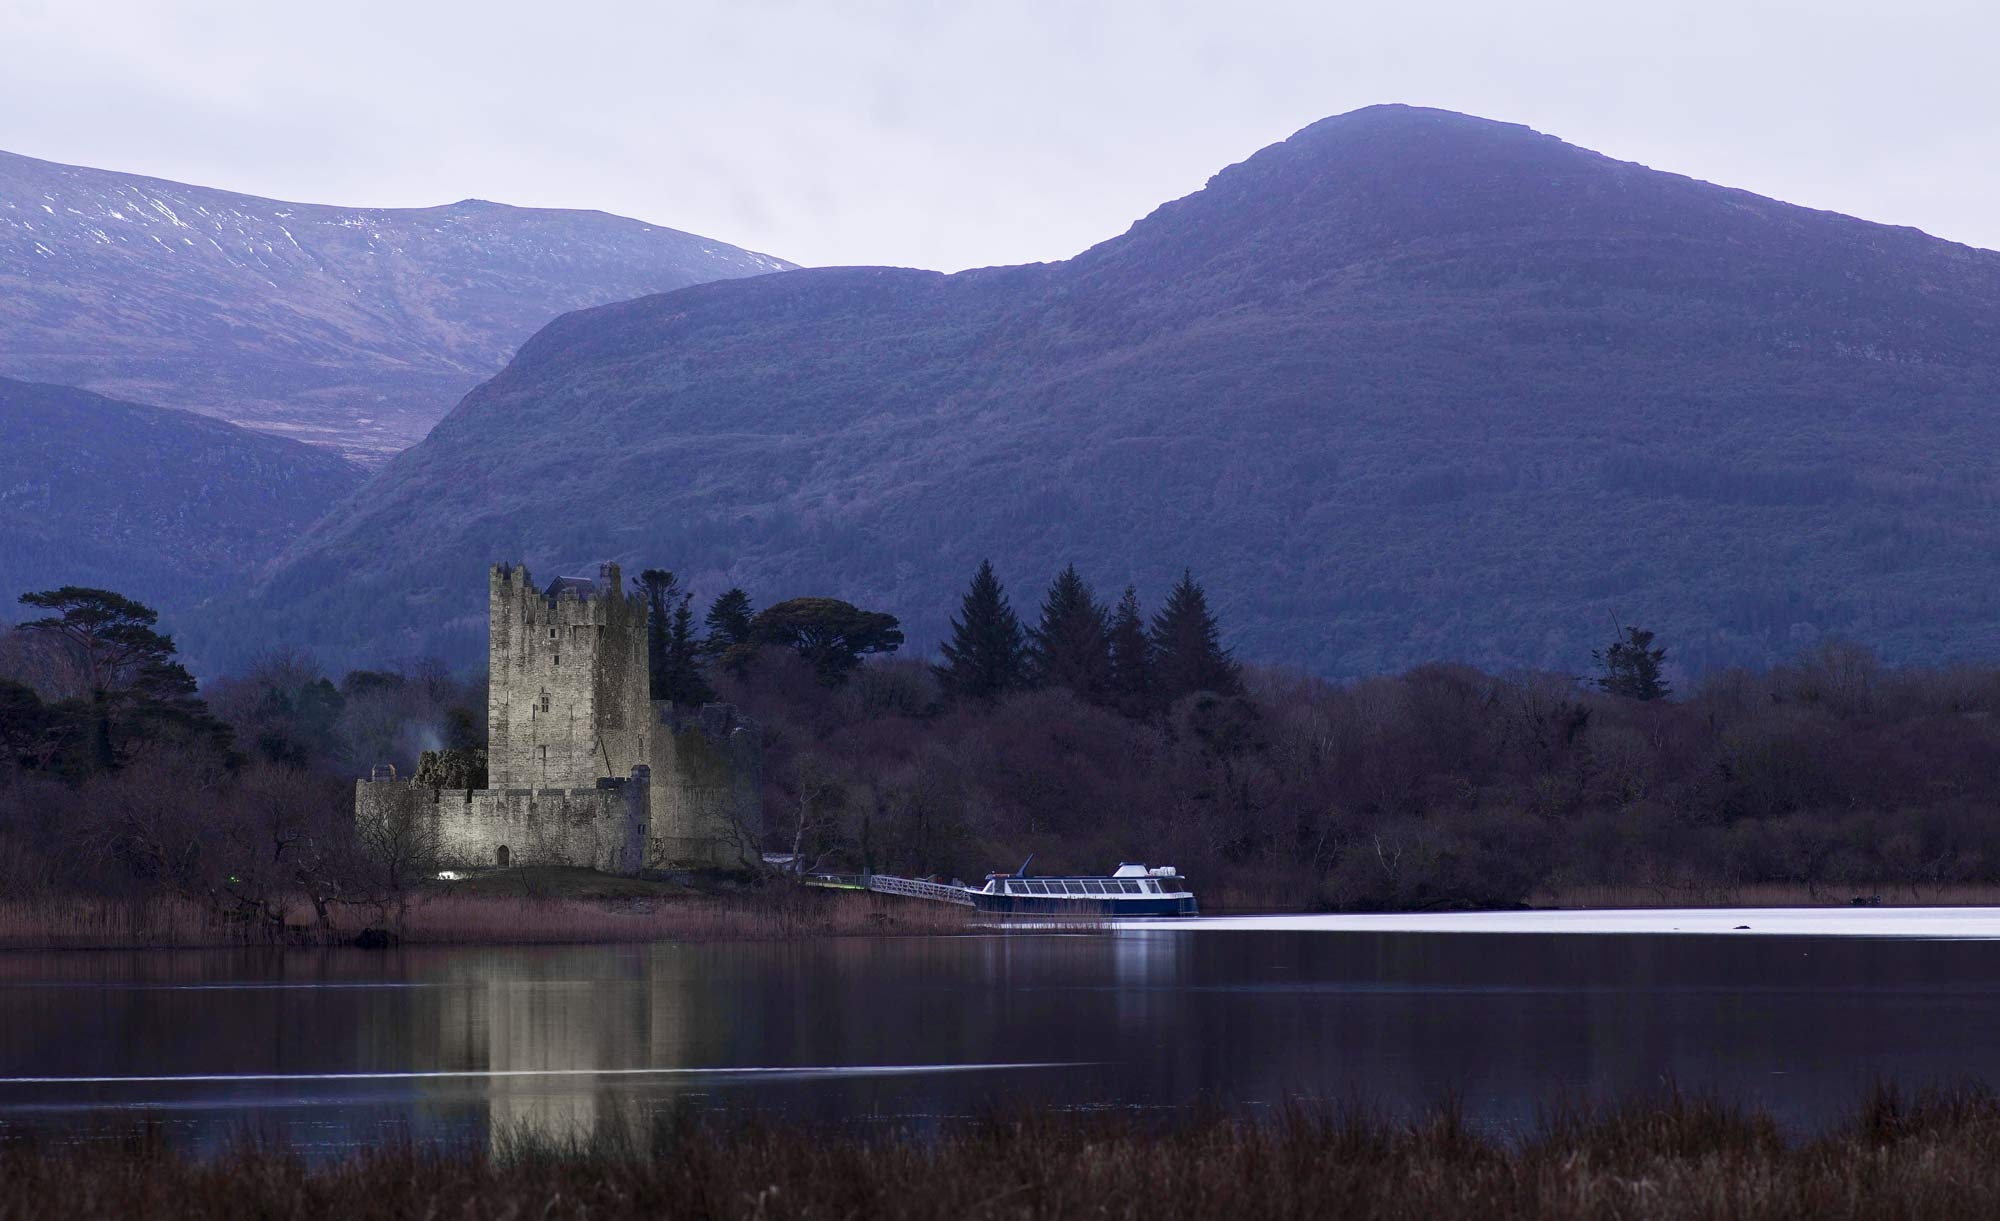 Ross Castle surrounding mountains